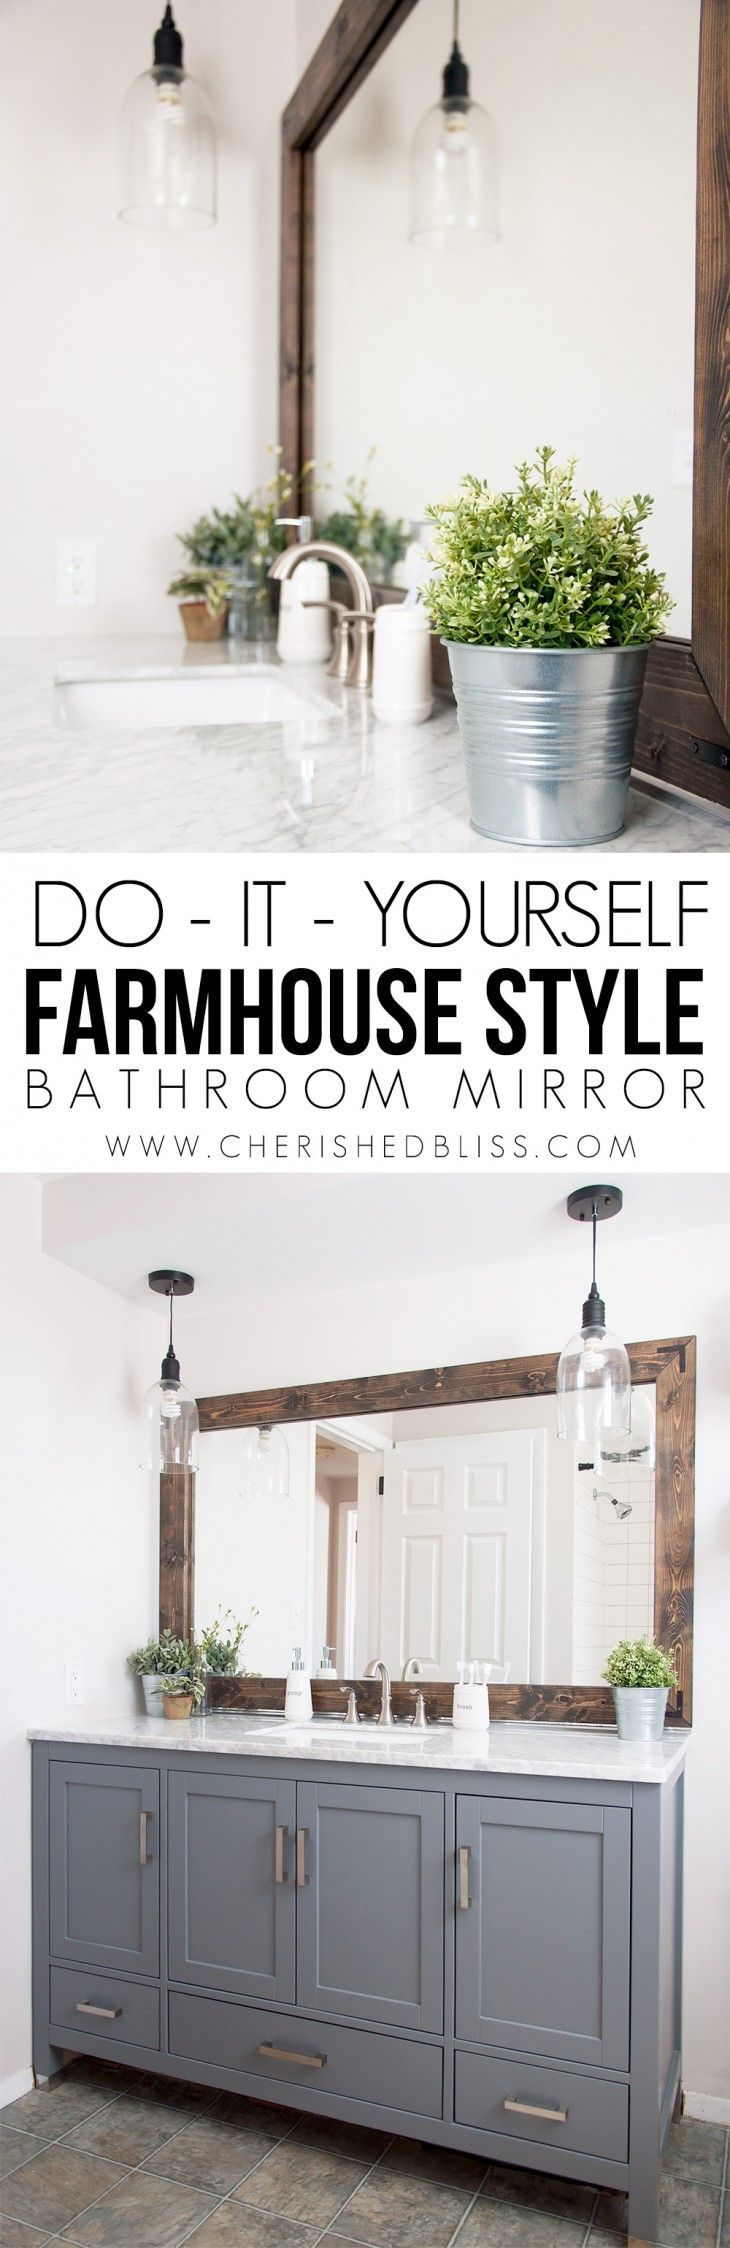 Best Farmhouse Bathrooms Ideas On Pinterest Bathroom Shelves - Farmhouse style bathroom vanity for bathroom decor ideas